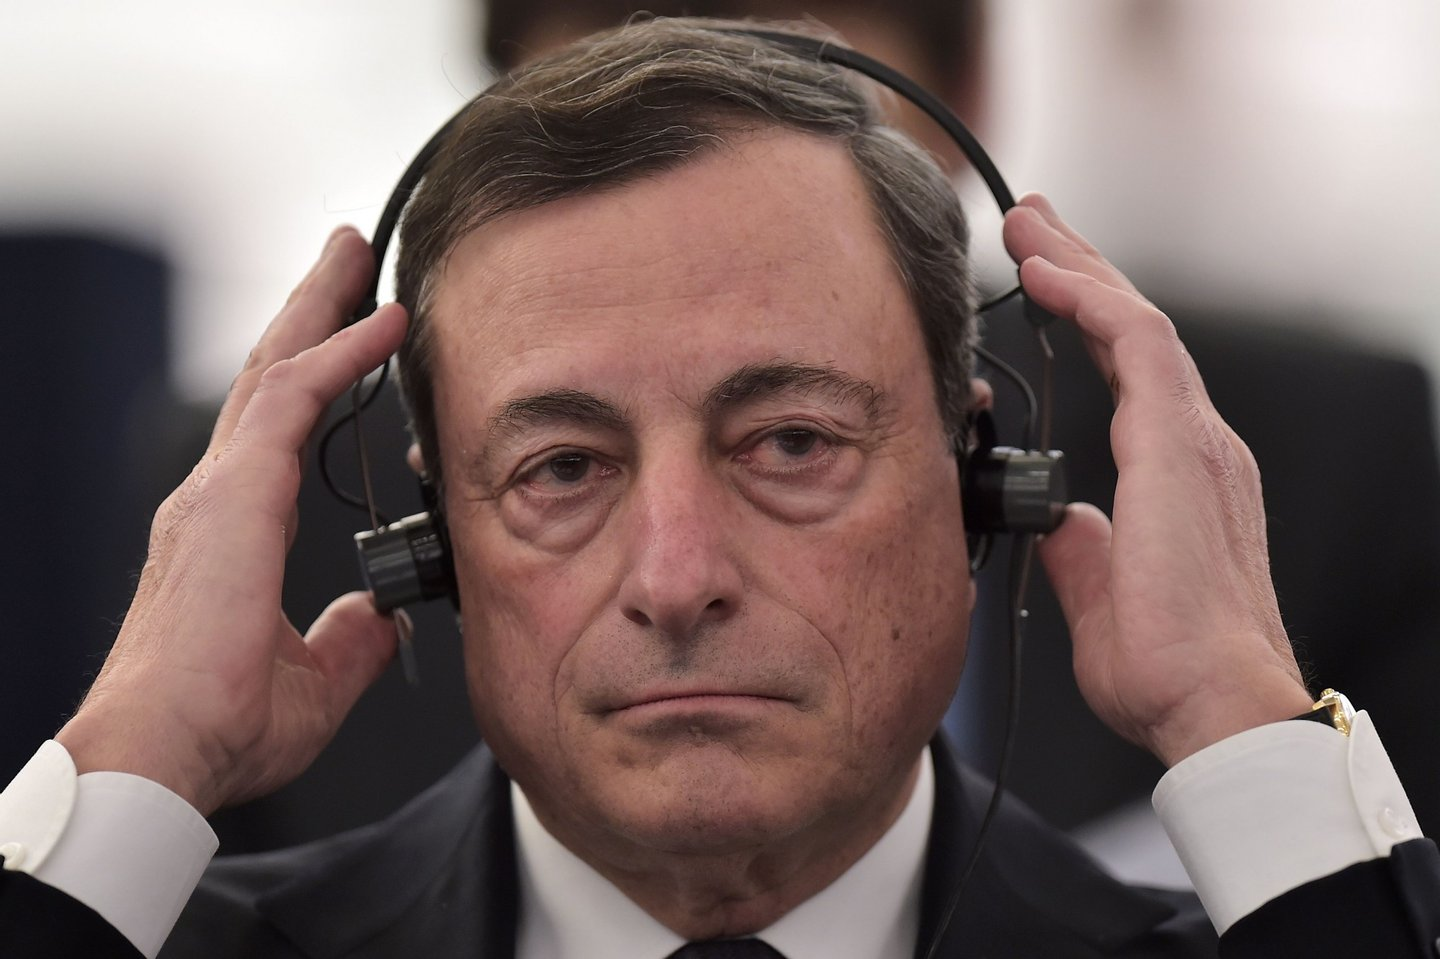 President of the European Central Bank (ECB) Mario Draghi adjusts his headphones as he attends a debate at the European Parliament in Strasbourg, eastern France, on February 1, 2016. / AFP / PATRICK HERTZOG (Photo credit should read PATRICK HERTZOG/AFP/Getty Images)